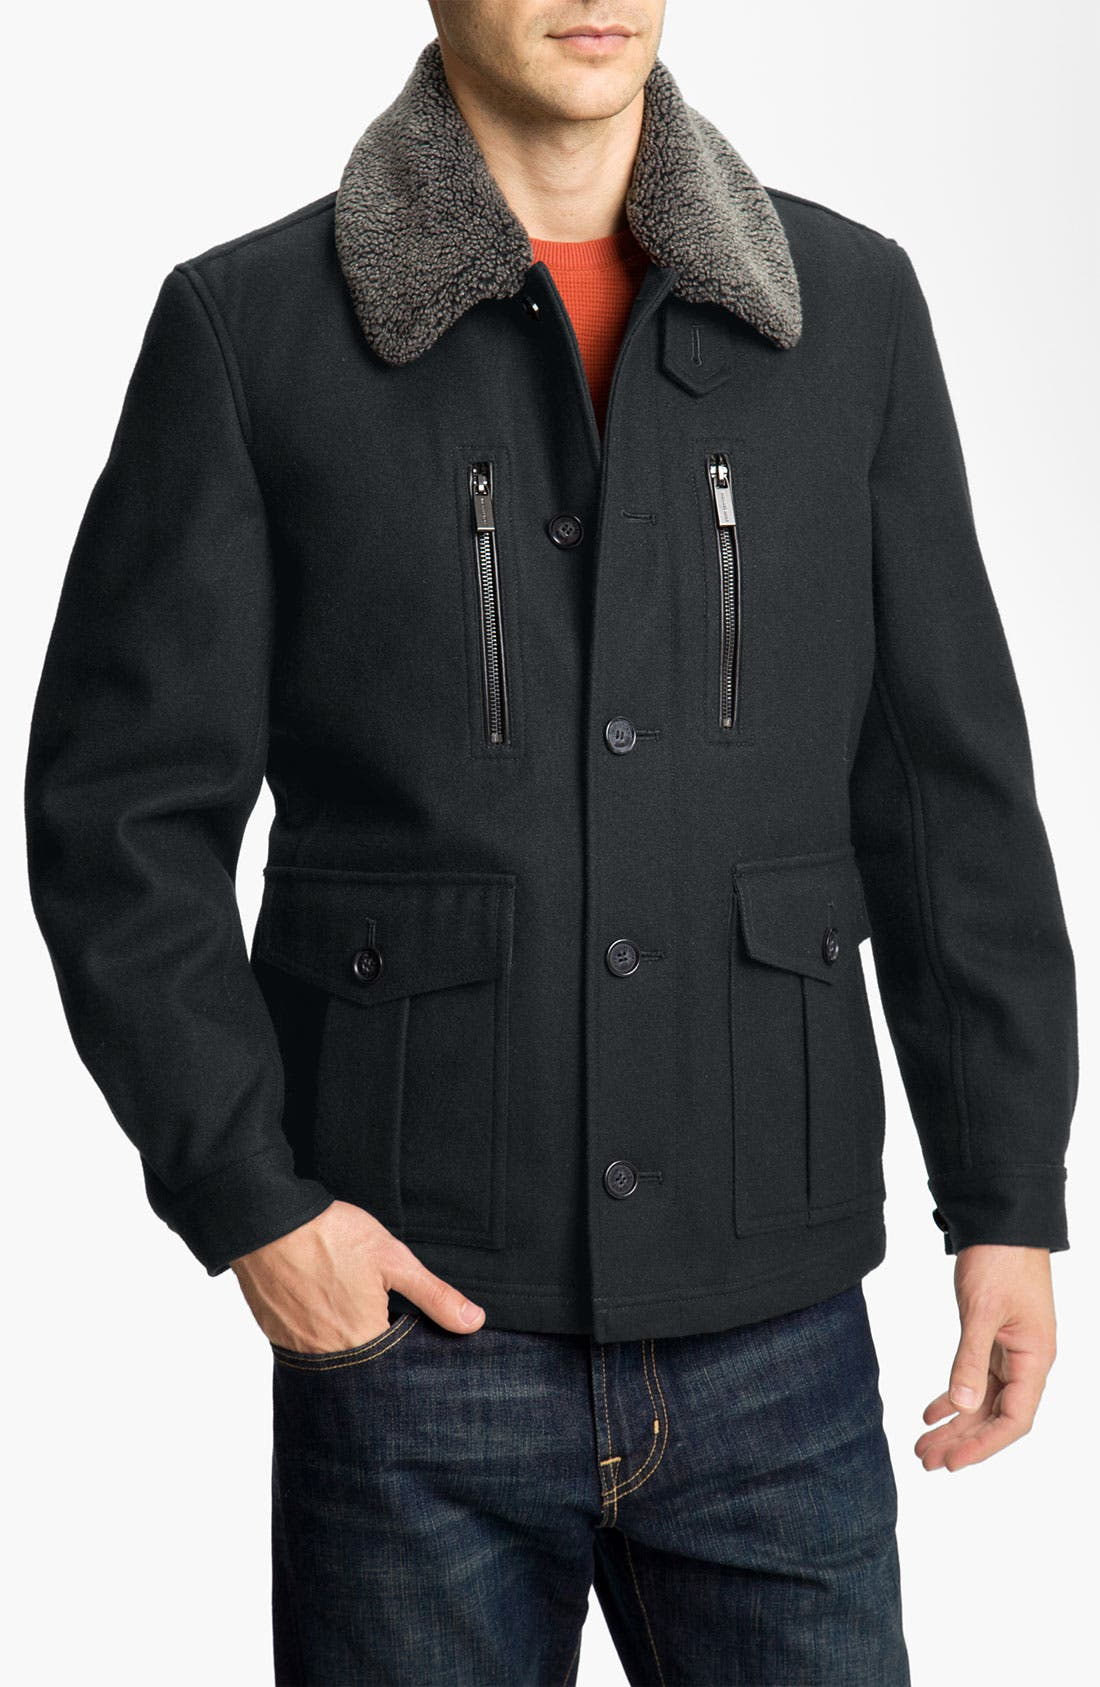 Alternate Image 1 Selected - Michael Kors Wool Blend Newsboy Jacket with Faux Shearling Trim